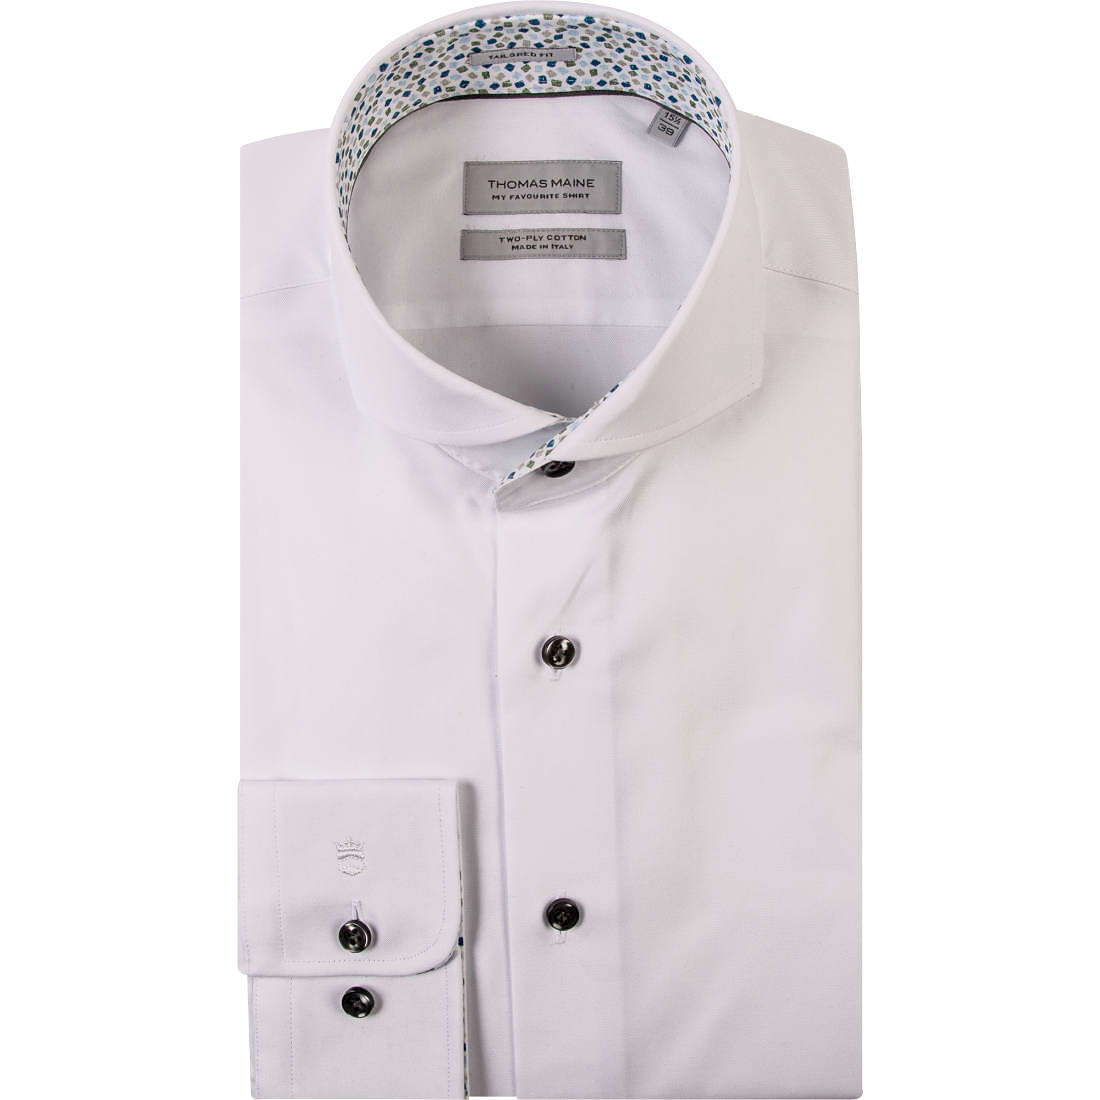 Thomas Maine overhemd Tailored Fit 91-7790 in het Wit